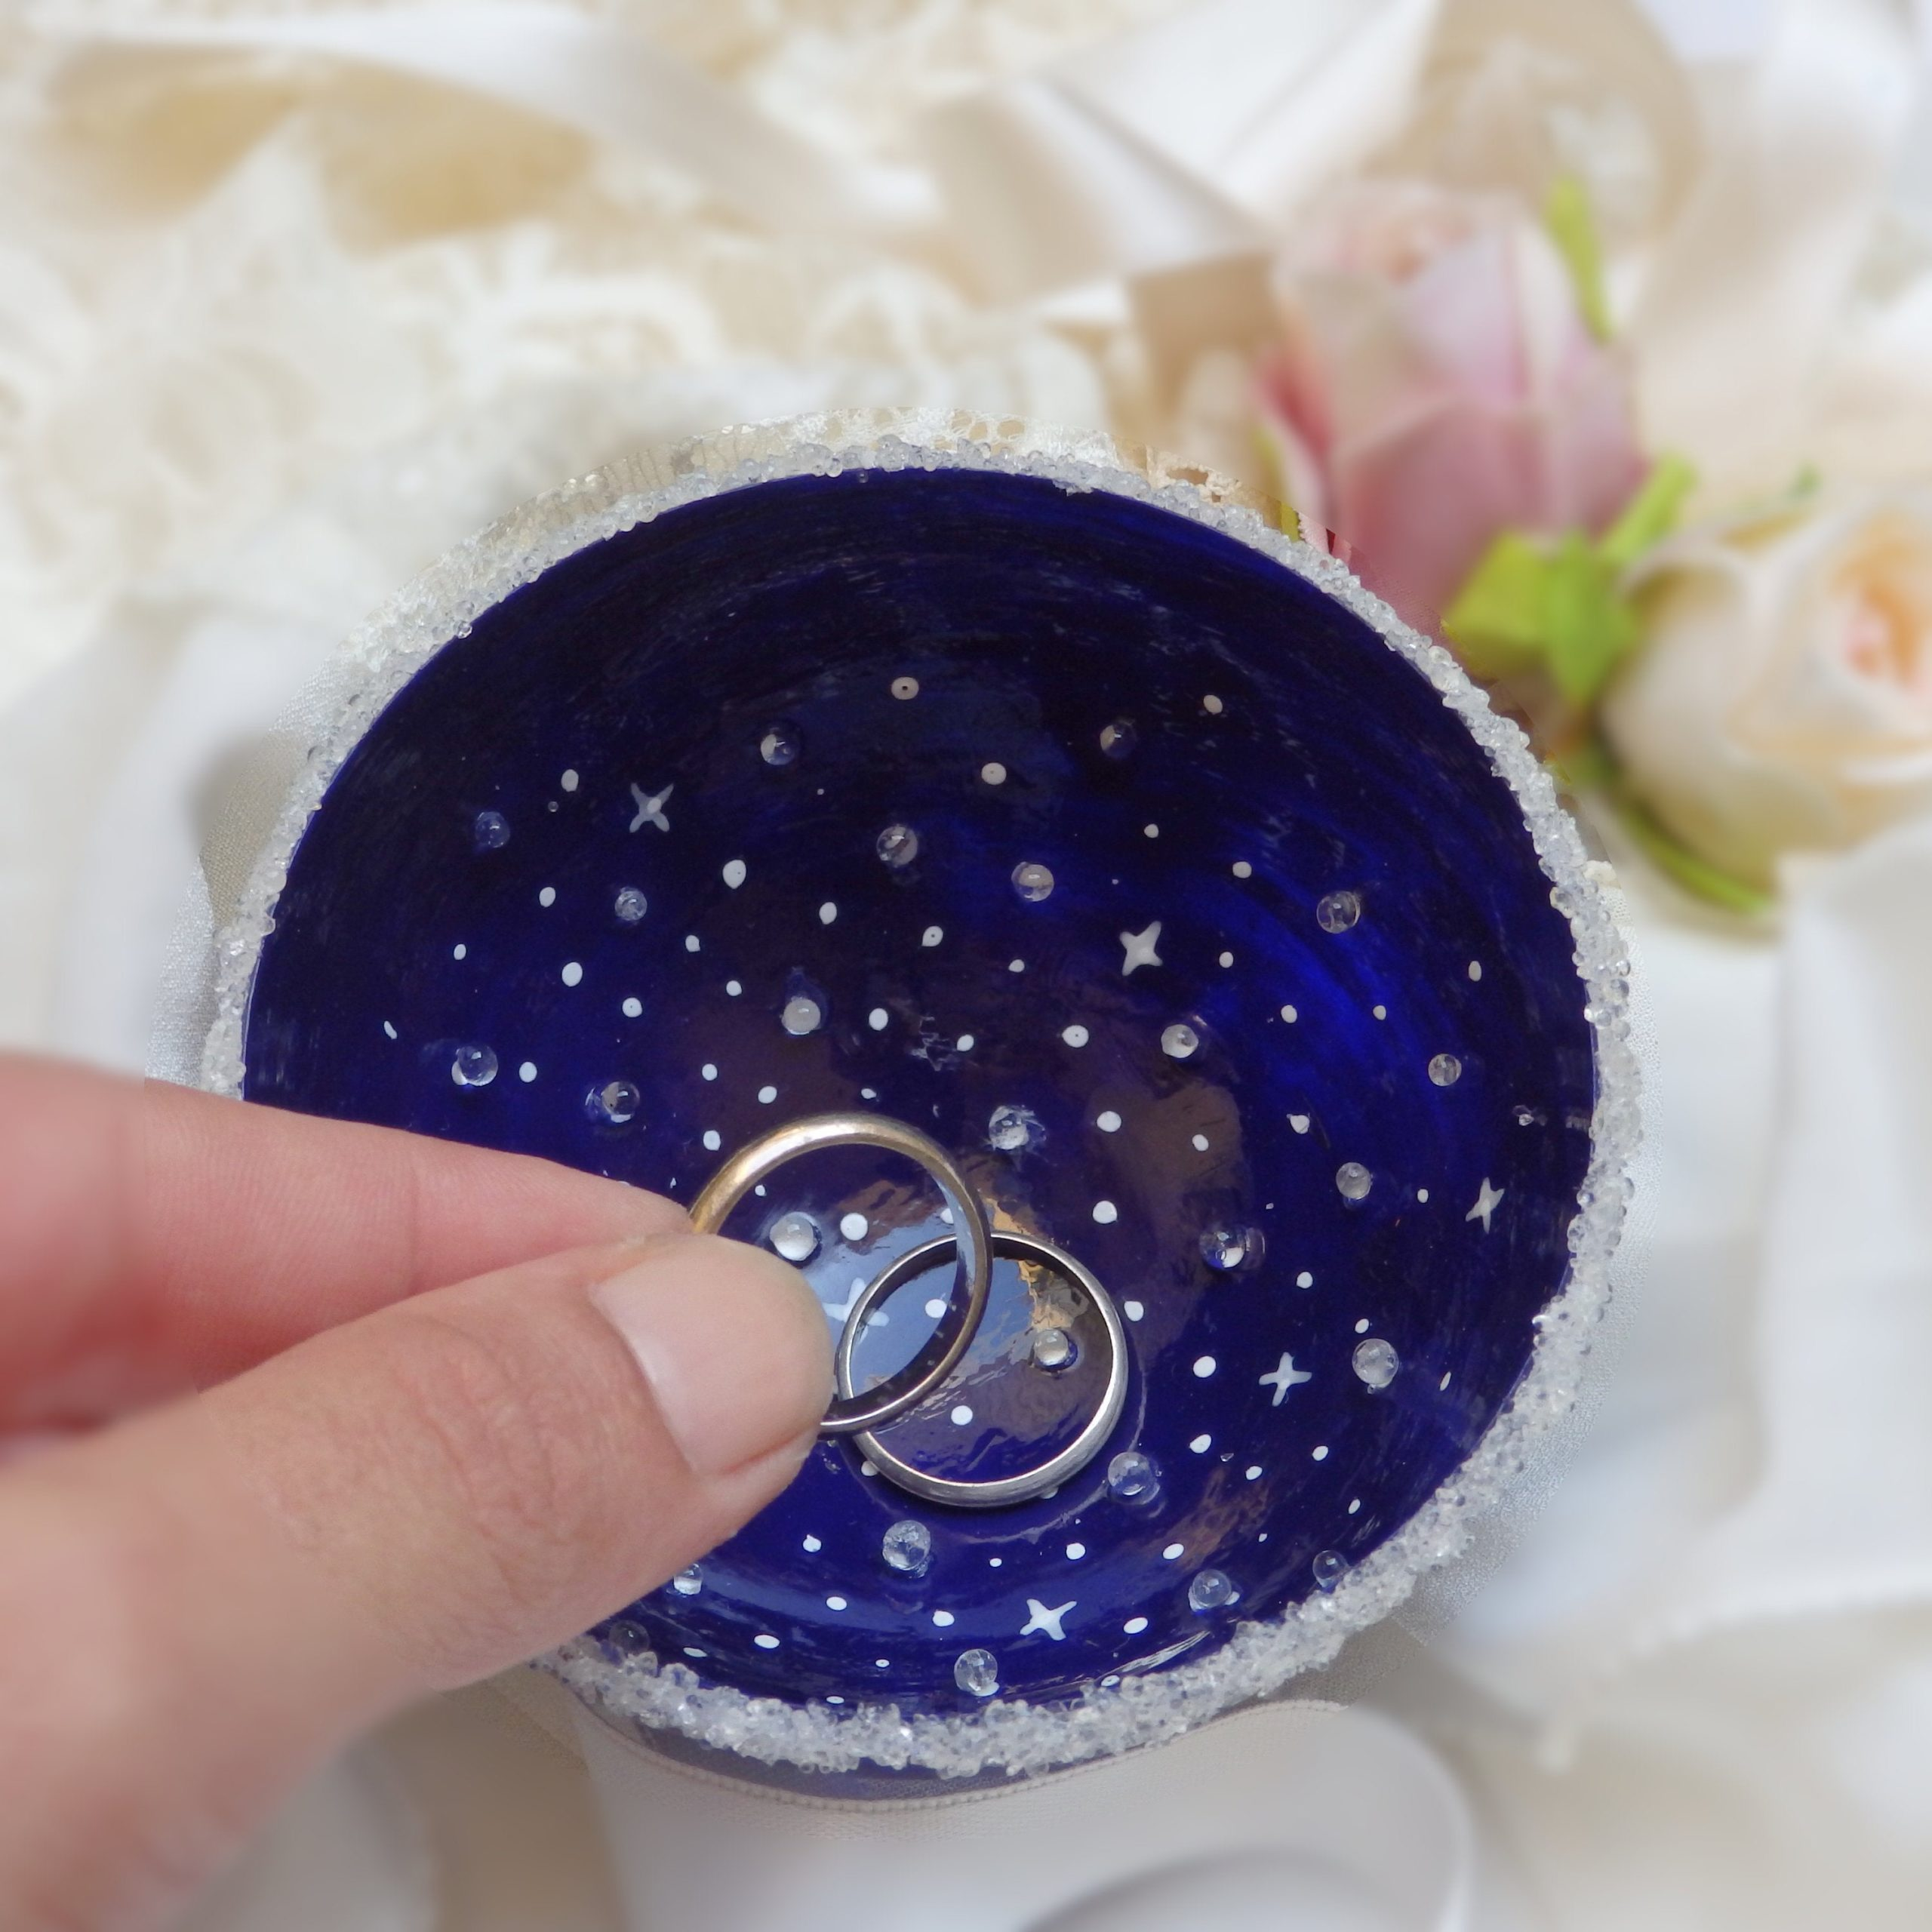 Ring-bearer-bowl-from-Etsy-shop-It-Looks-Like-Design-scaled